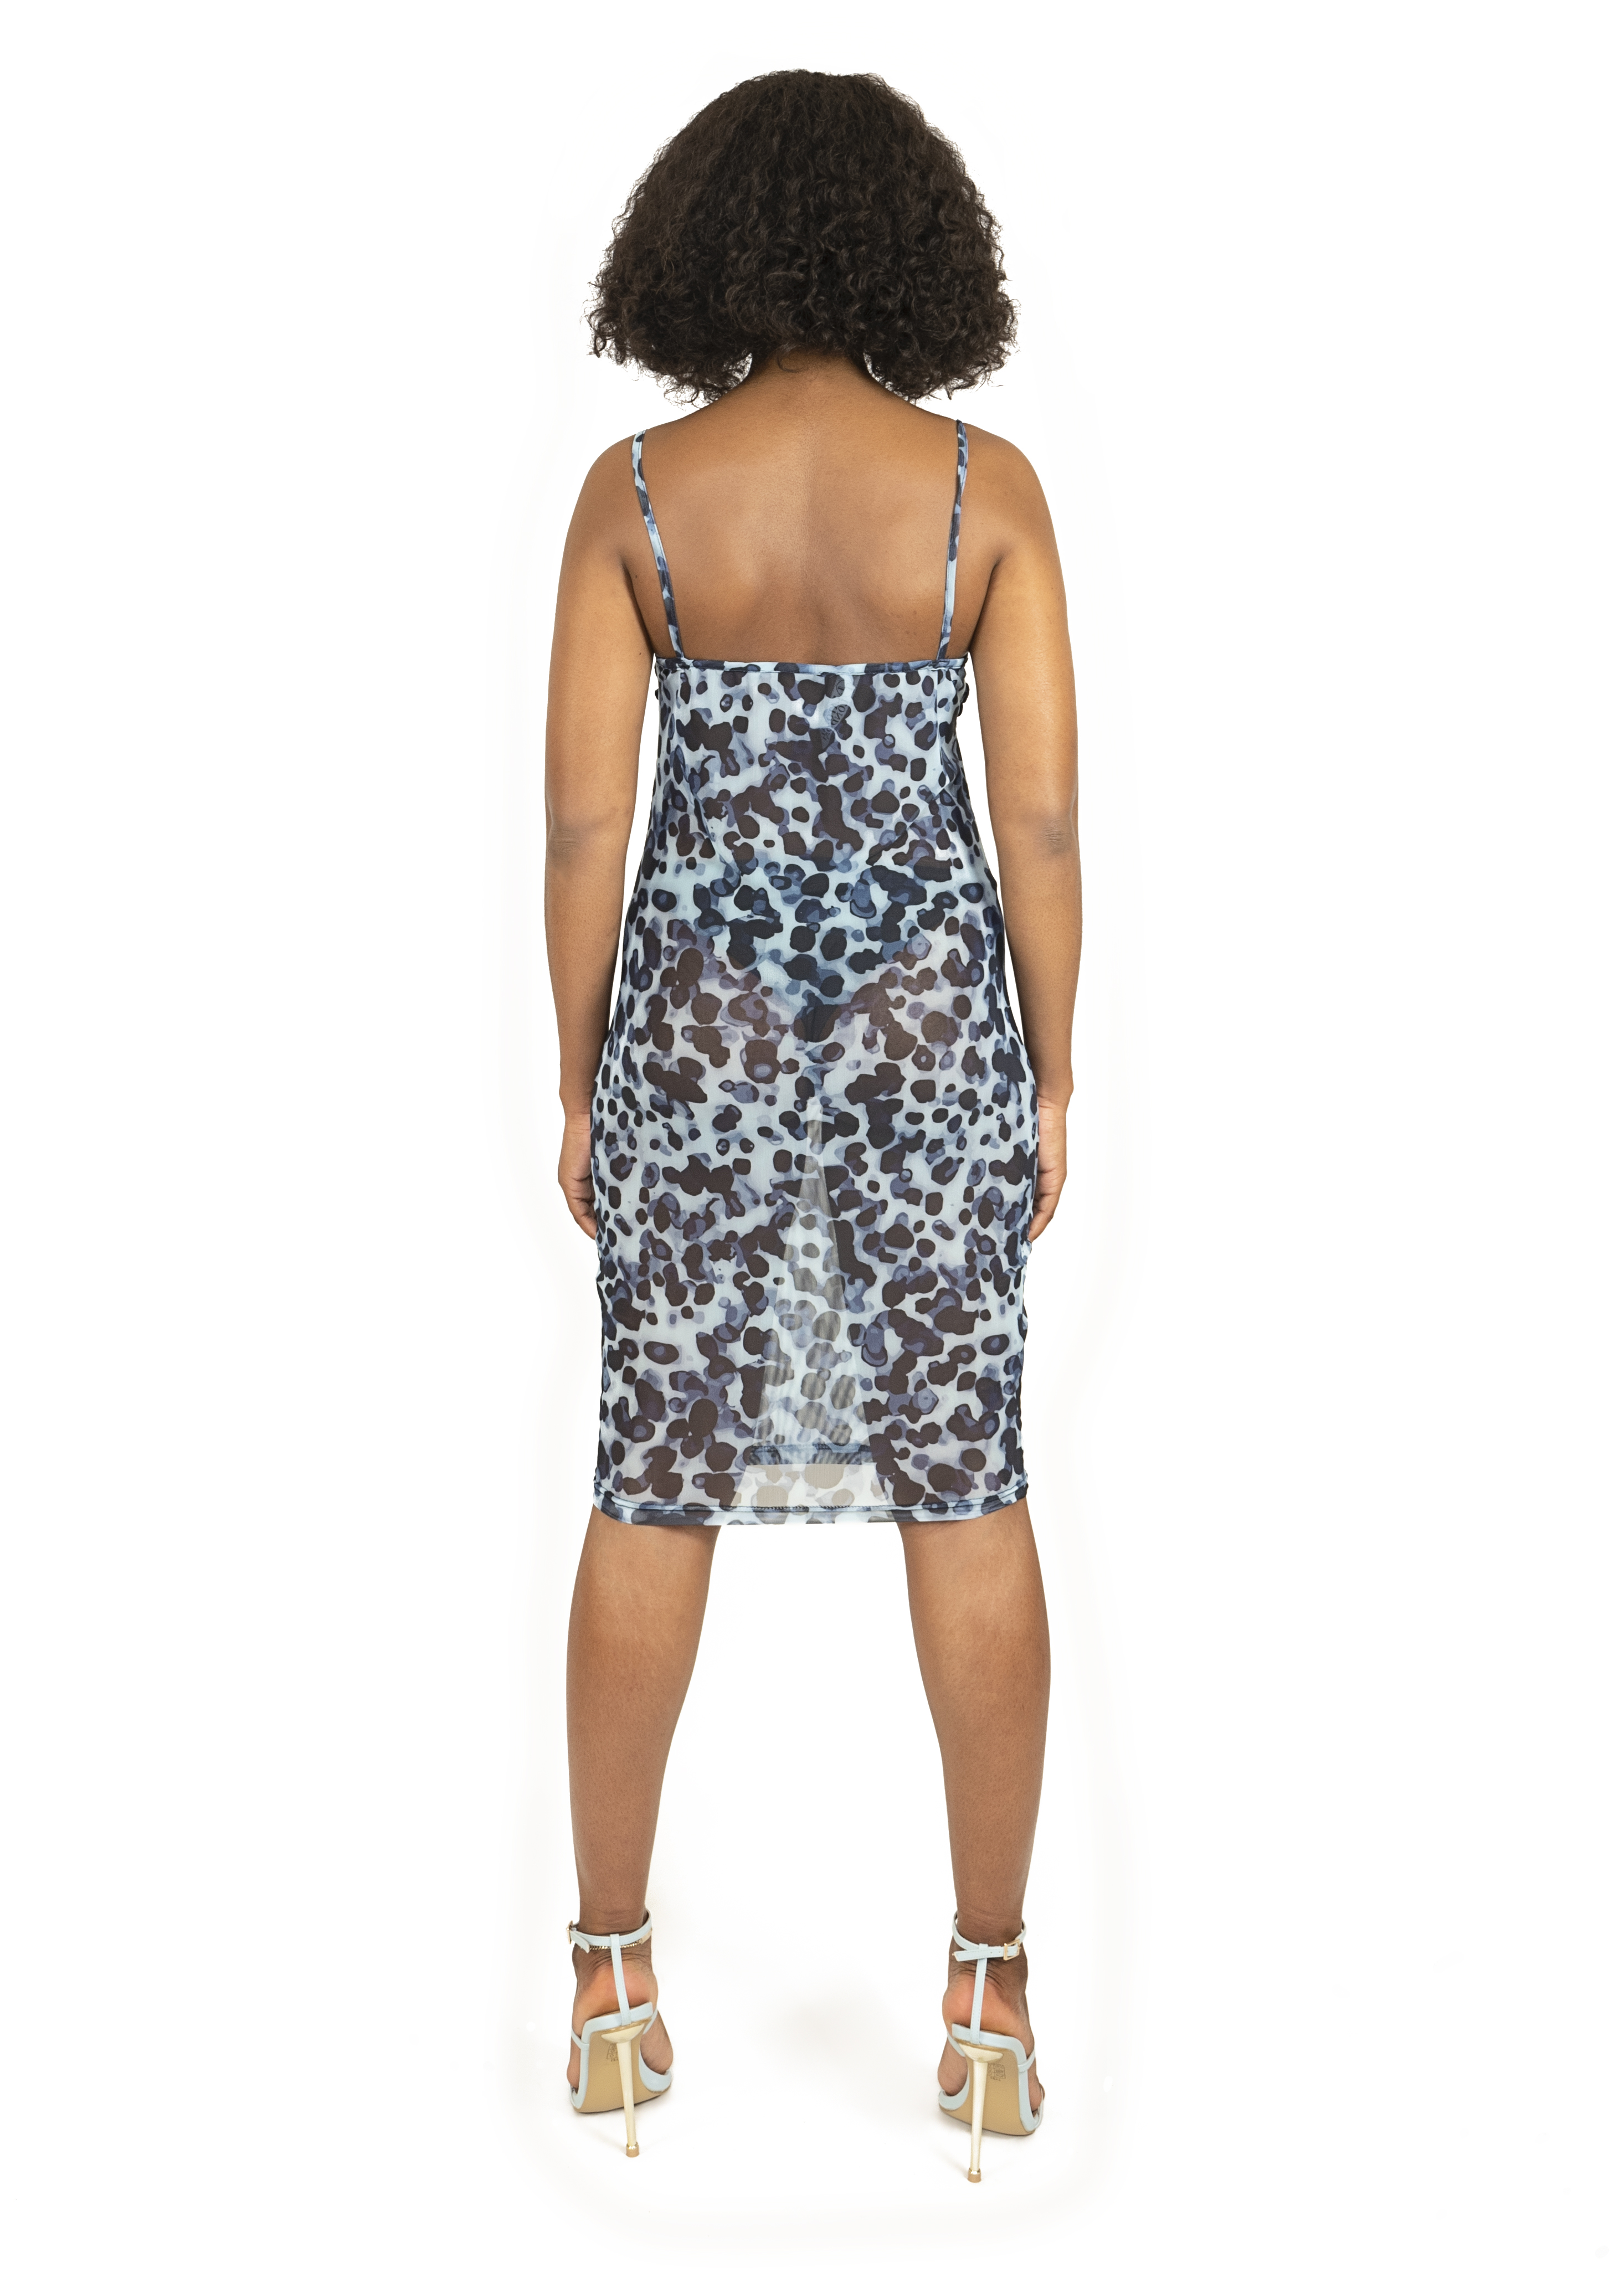 Dress_cloths_garments_product_photos_with_model_21